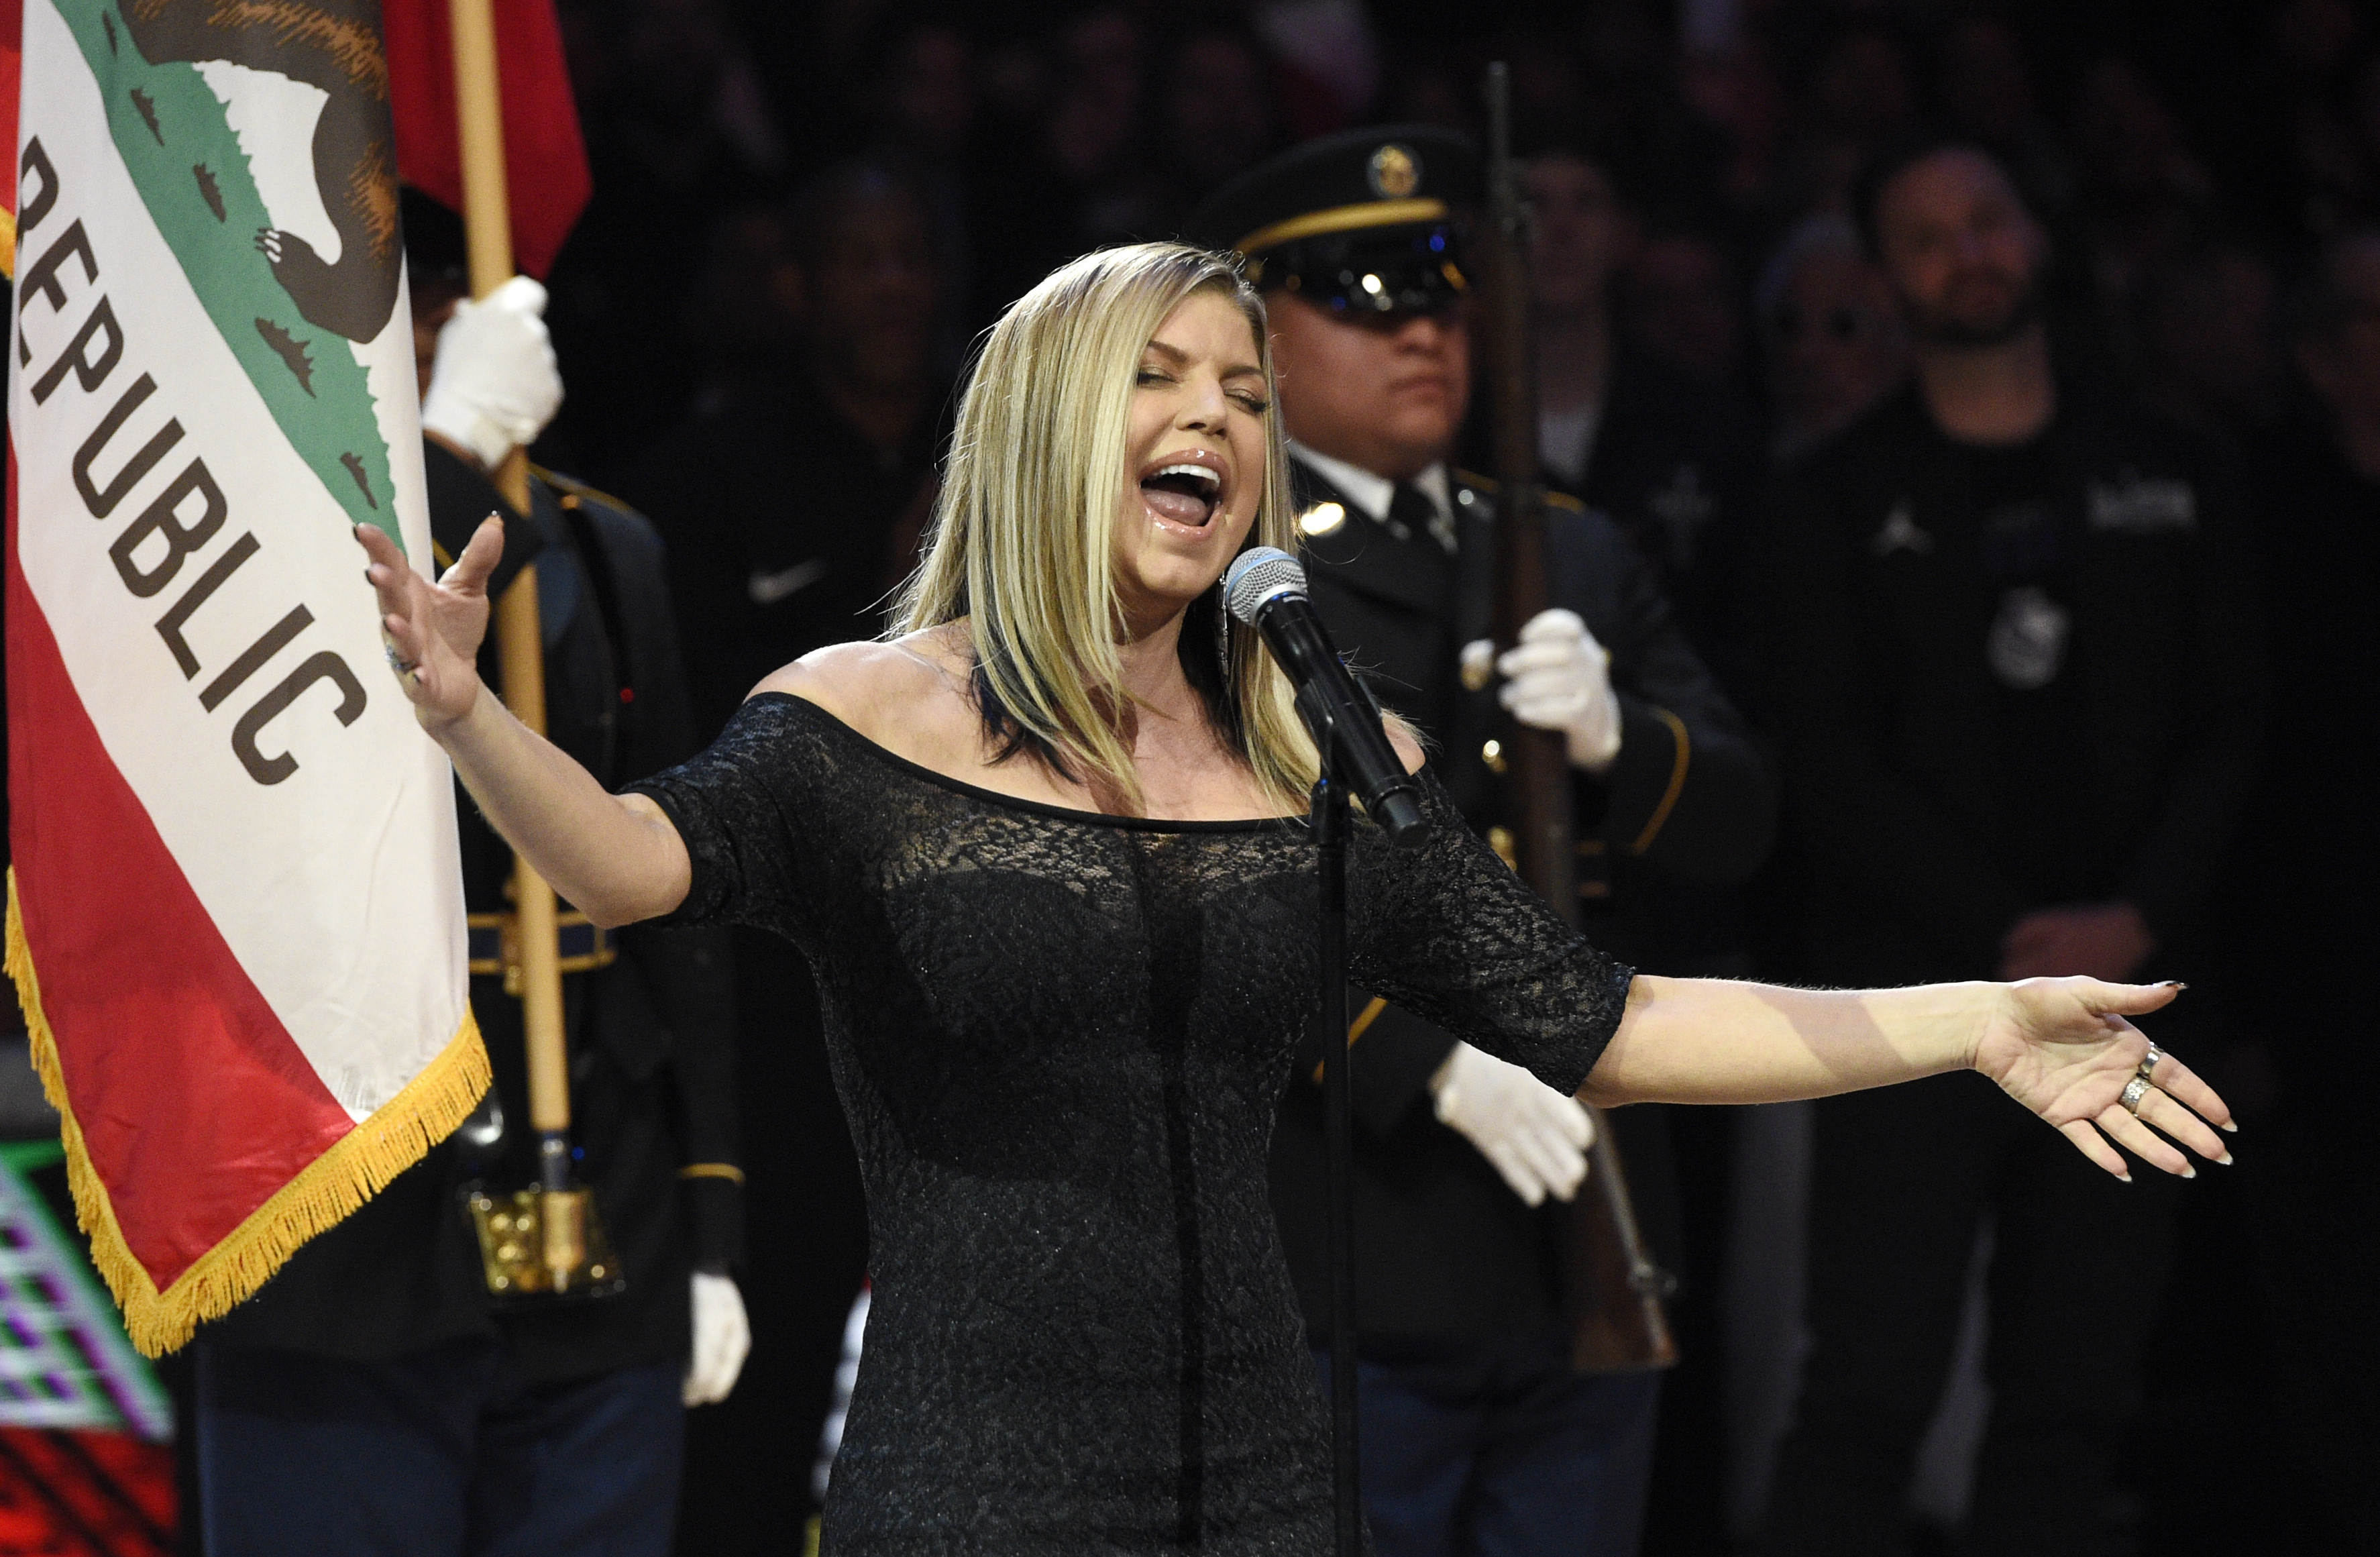 In this Sunday, Feb. 18, 2018, photo, Fergie performs the national anthem before the start of the NBA All-Star basketball game in Los Angeles.